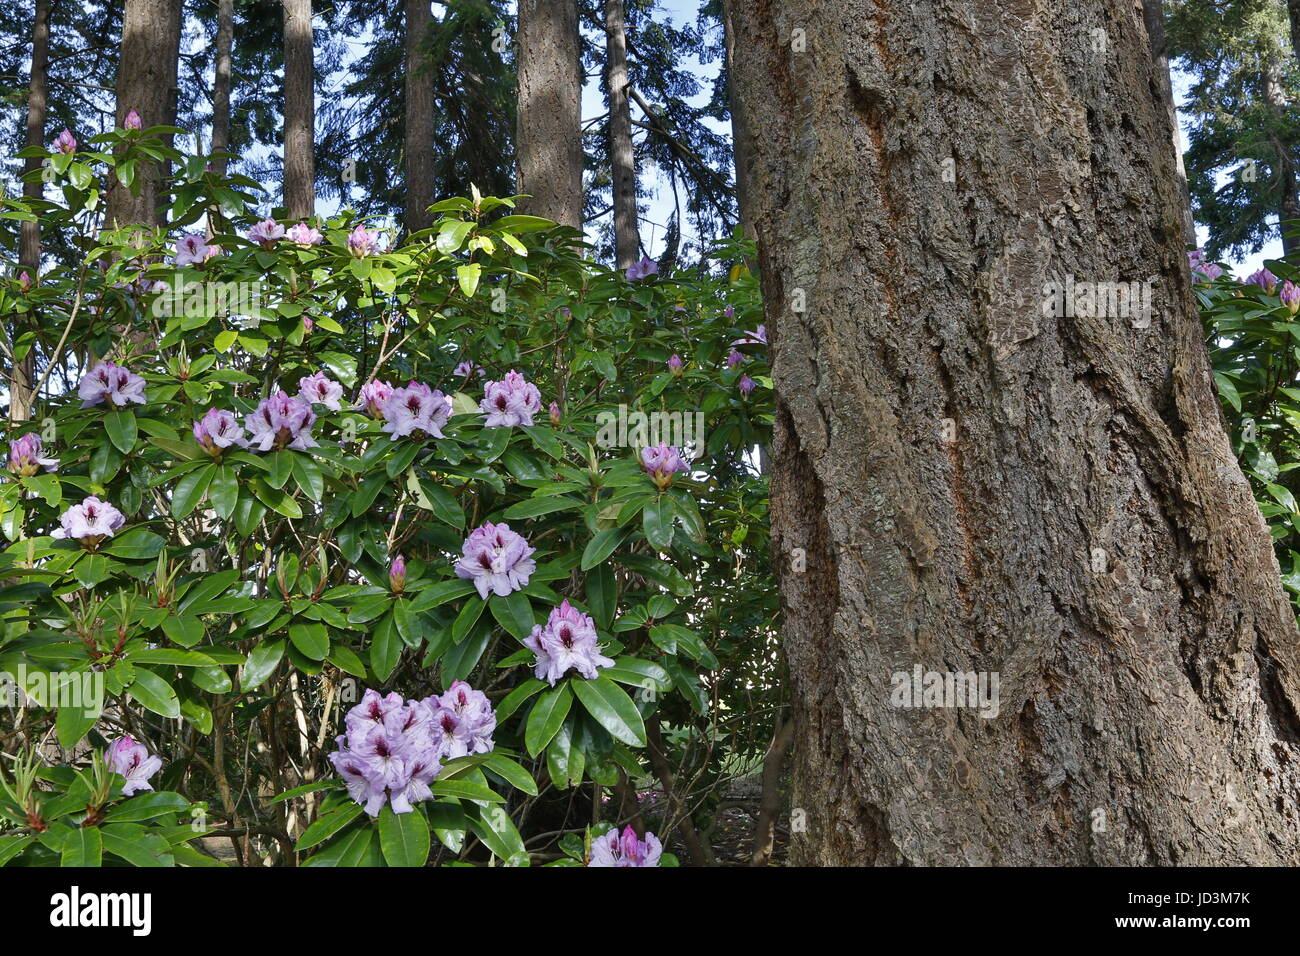 Rhododendron, rhododendrons in the forest of Pacific Northwest with fir tree. Stock Photo